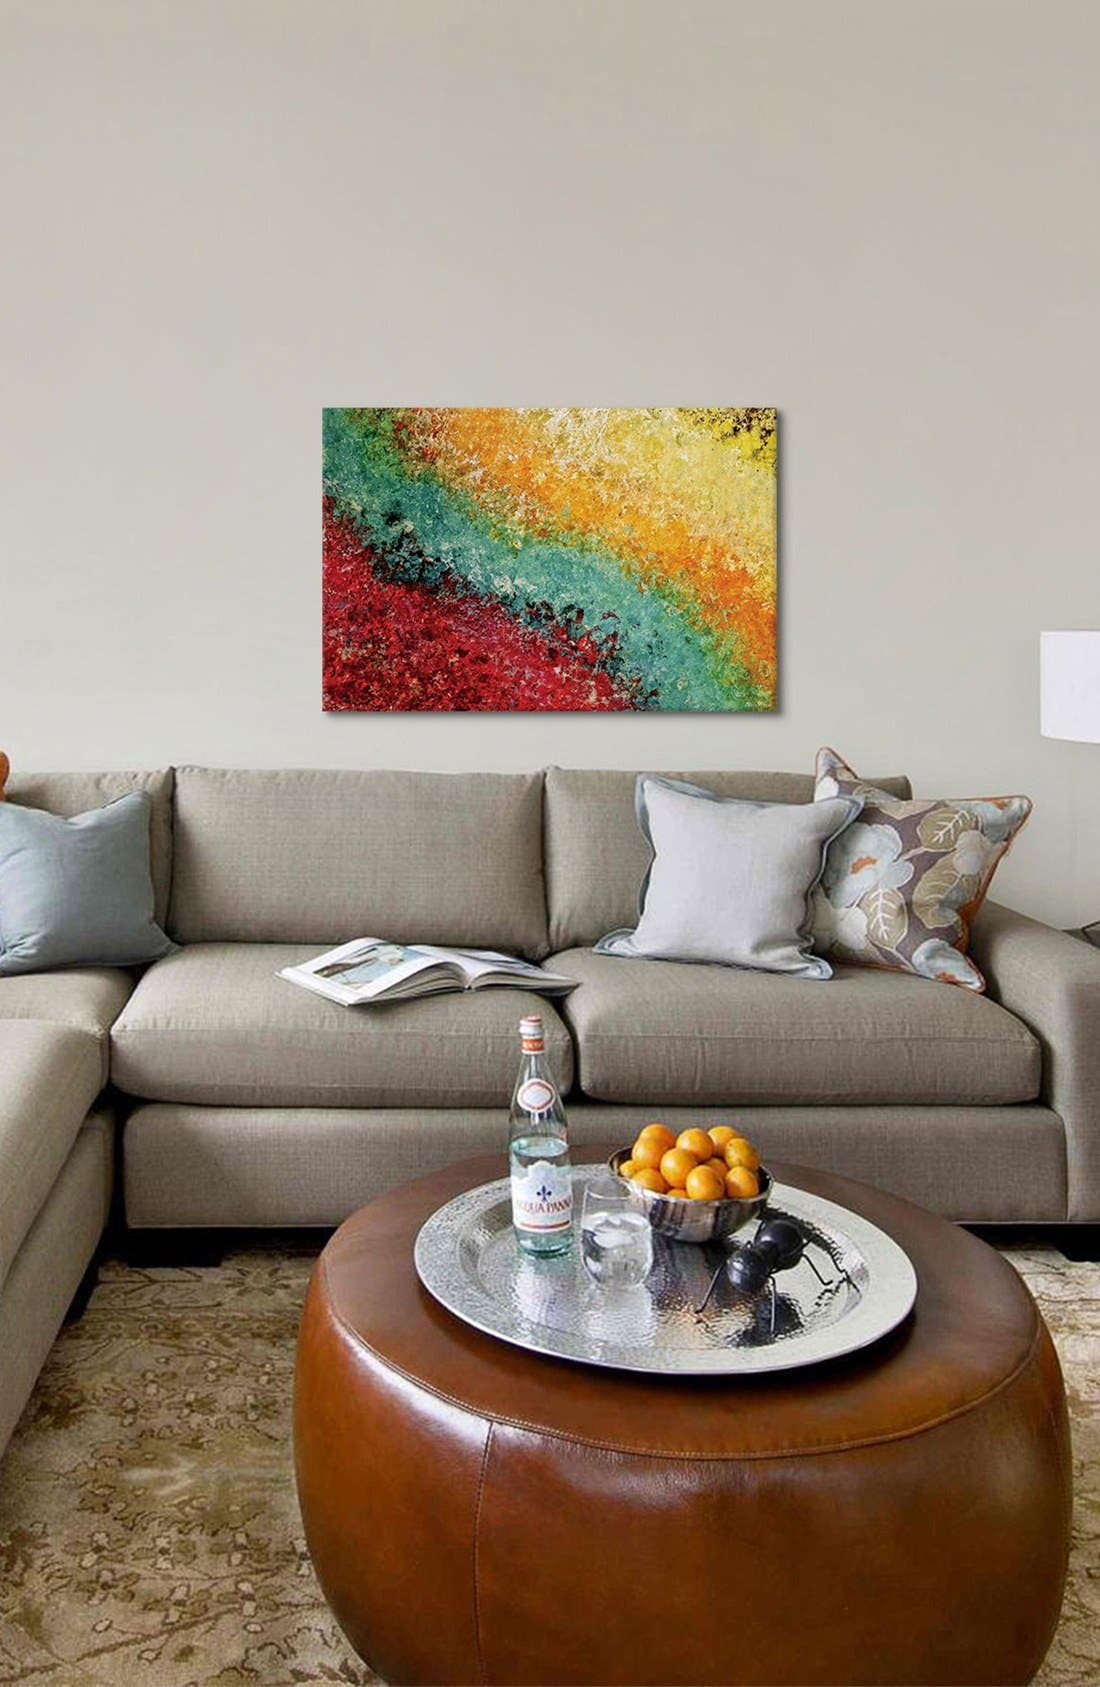 'Enchanted Lullaby' Giclée Print Canvas Art,                             Alternate thumbnail 2, color,                             700